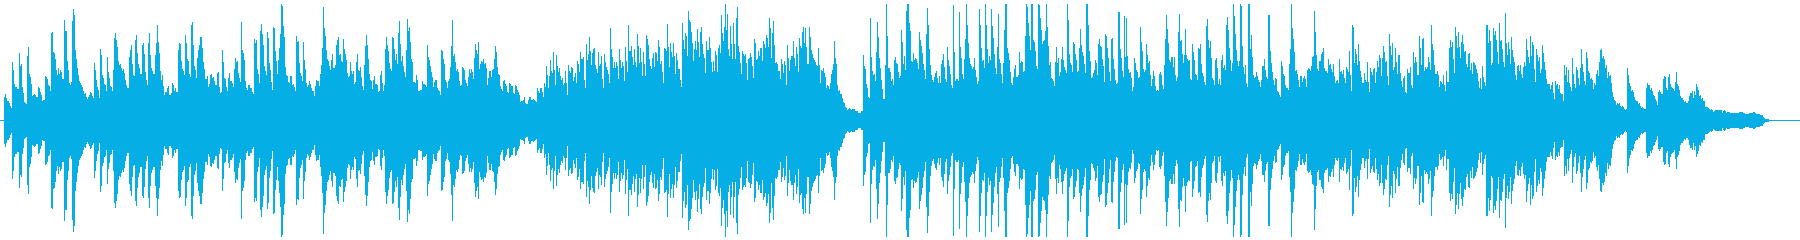 Corporate VP / Moist and moving piano waltz's reproduced waveform